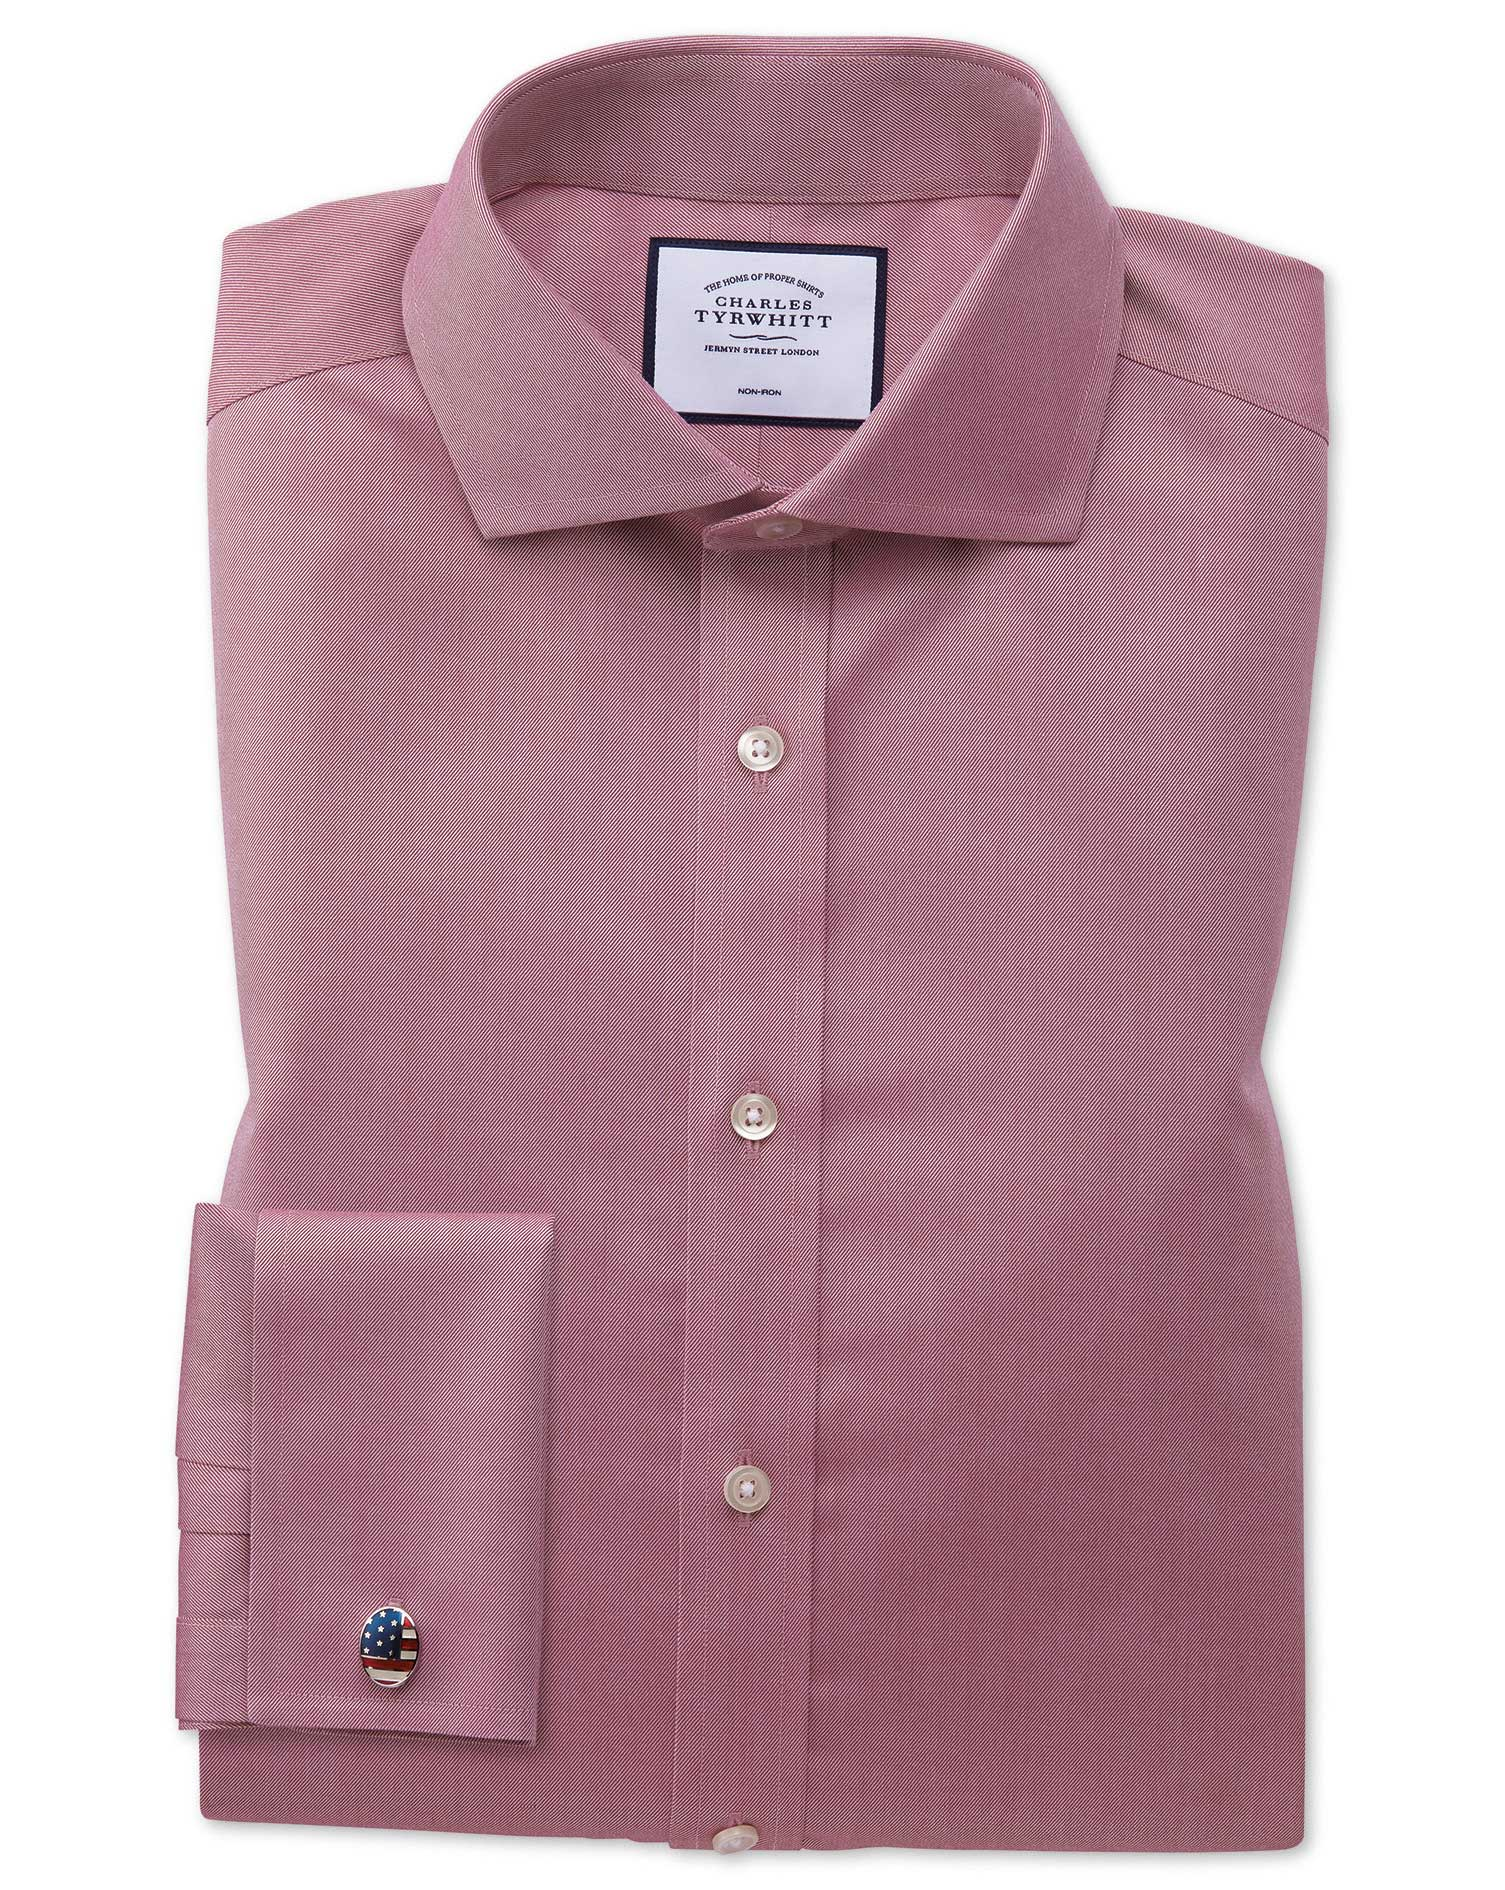 Slim Fit Non-Iron Cutaway Collar Red Twill Cotton Formal Shirt Single Cuff Size 15.5/37 by Charles T